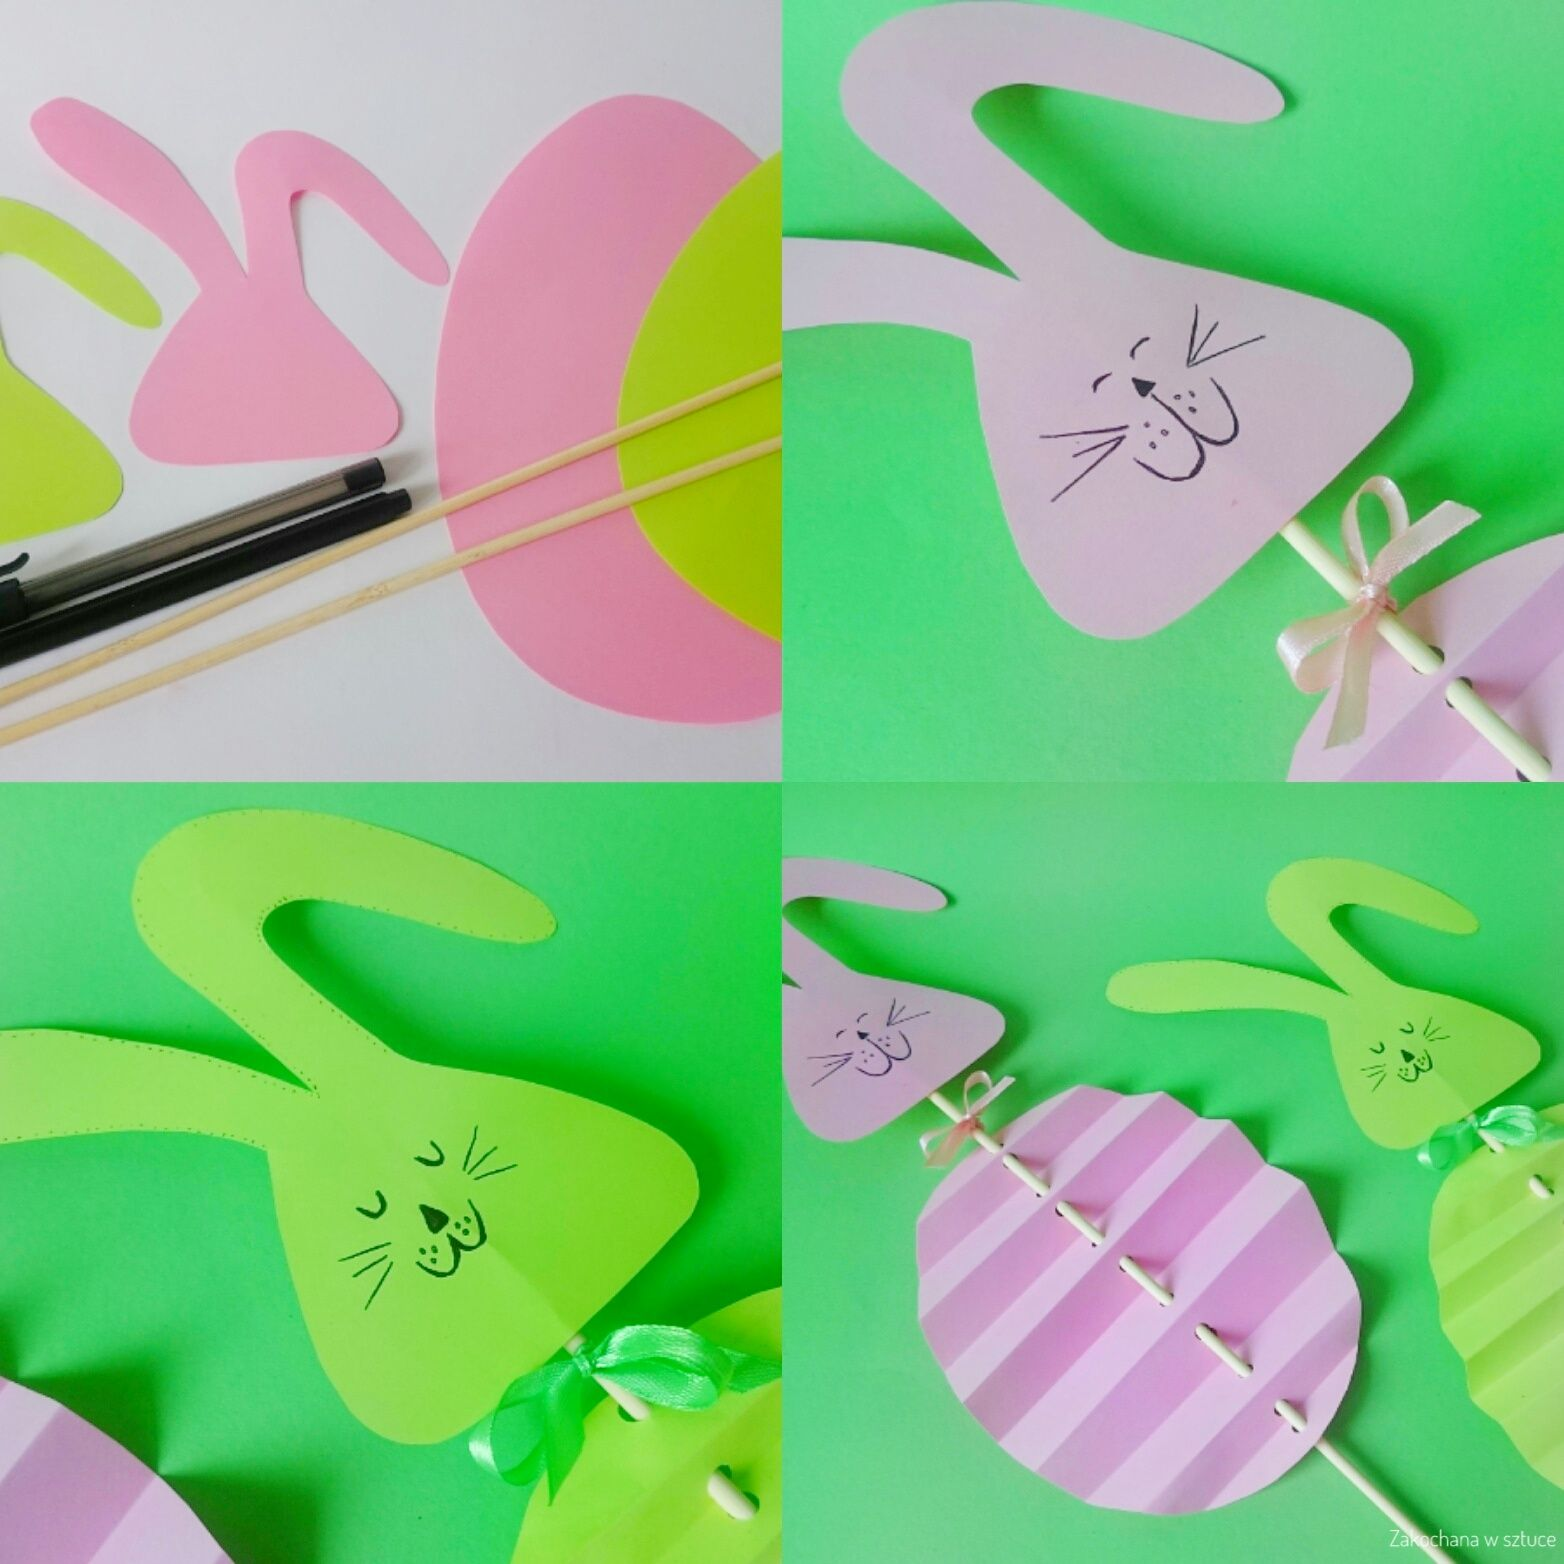 Pin by OonTin LIm on Easter   Pinterest   Easter, Easter crafts and ...